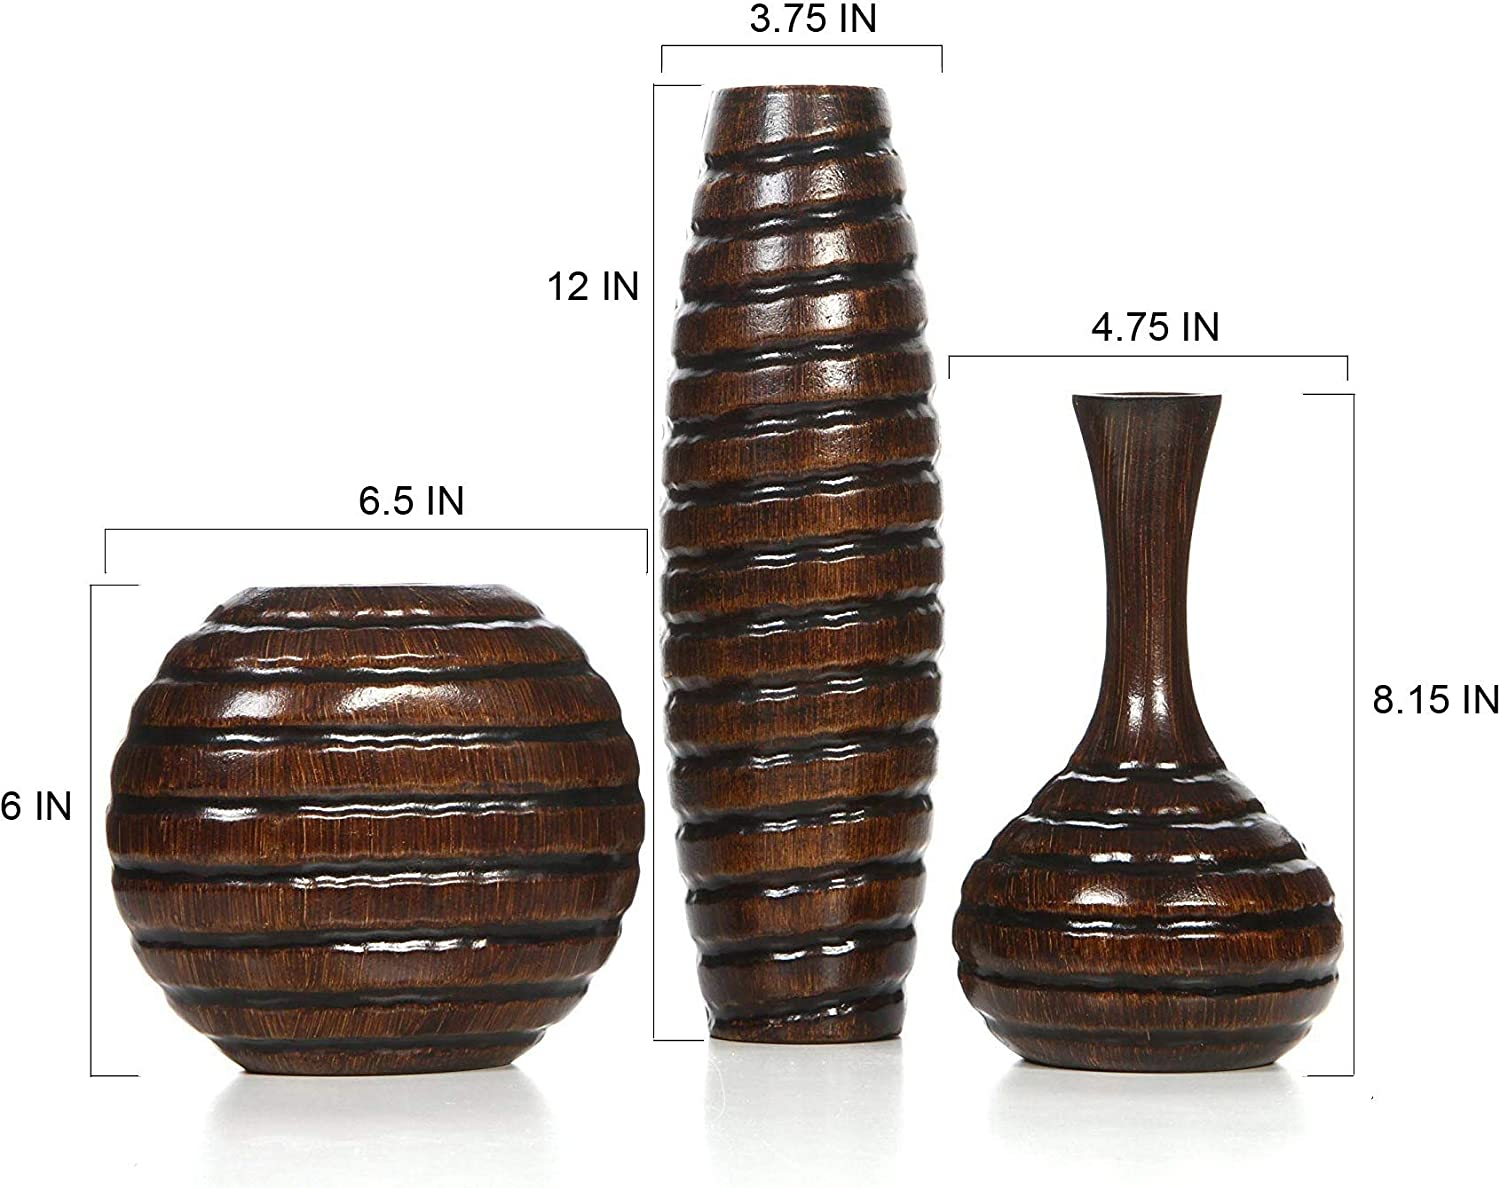 Amazon Com Hosley Set Of 3 Carved Wood Vases Small 6 Inch Medium 8 Inch And Tall 12 Inch High Ideal Gift For Wedding And Use For Home Or Office Decor Fireplace Floor